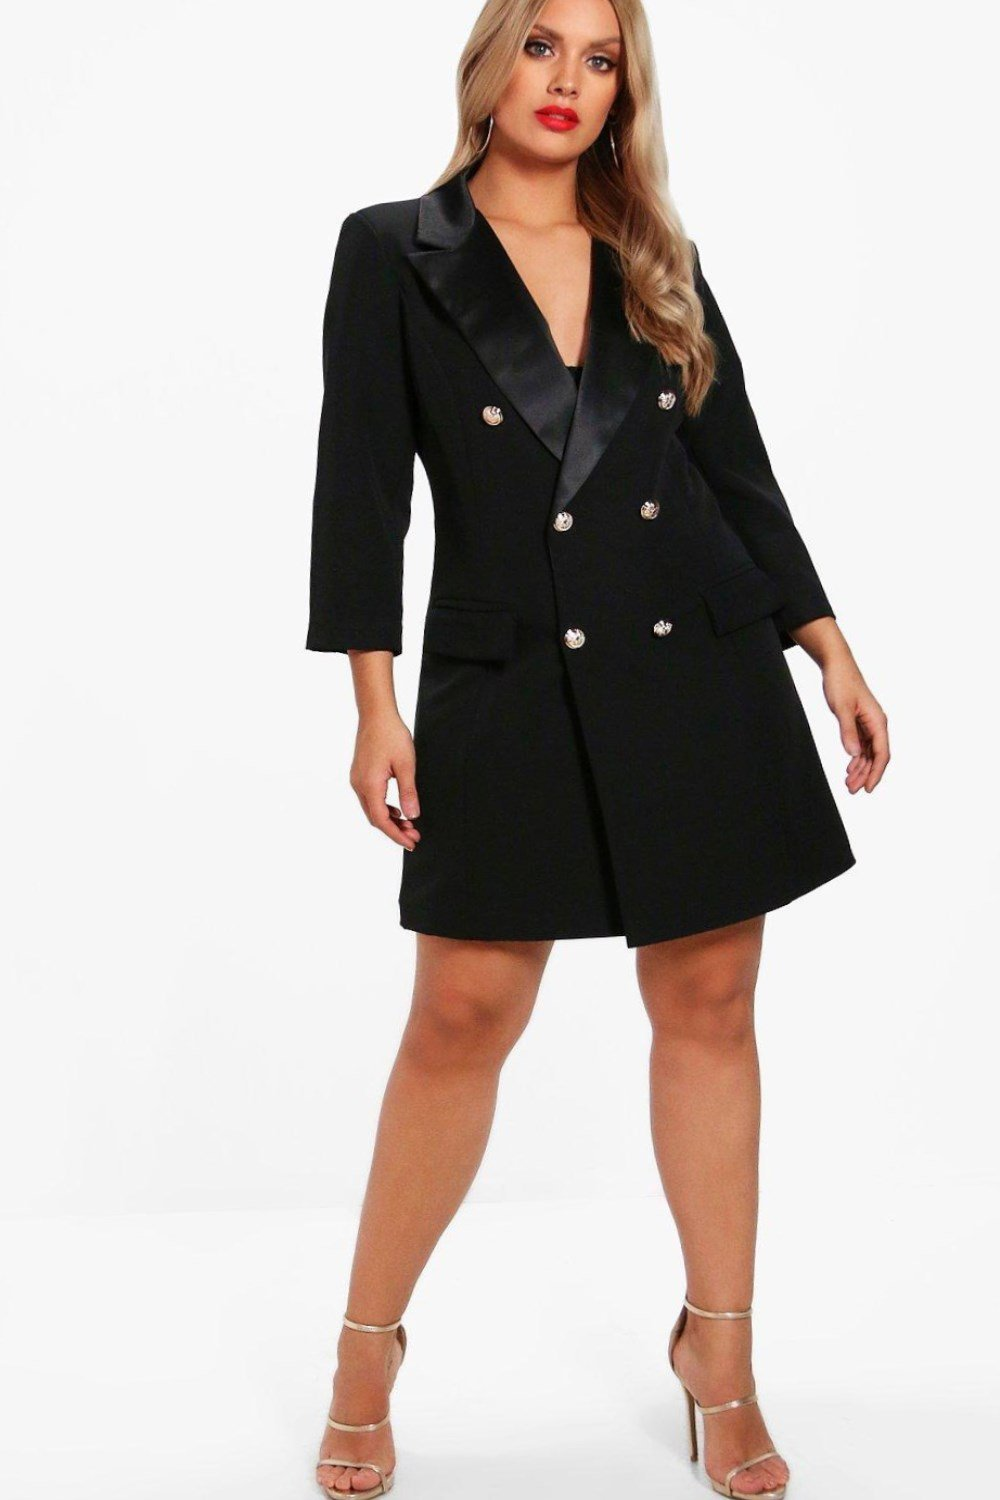 1f9a7b30c5 This tuxedo dress creates an hourglass figure and features a deep v-neck,  and is a wonderful fashion choice if you want to show your stunning figure  at a ...